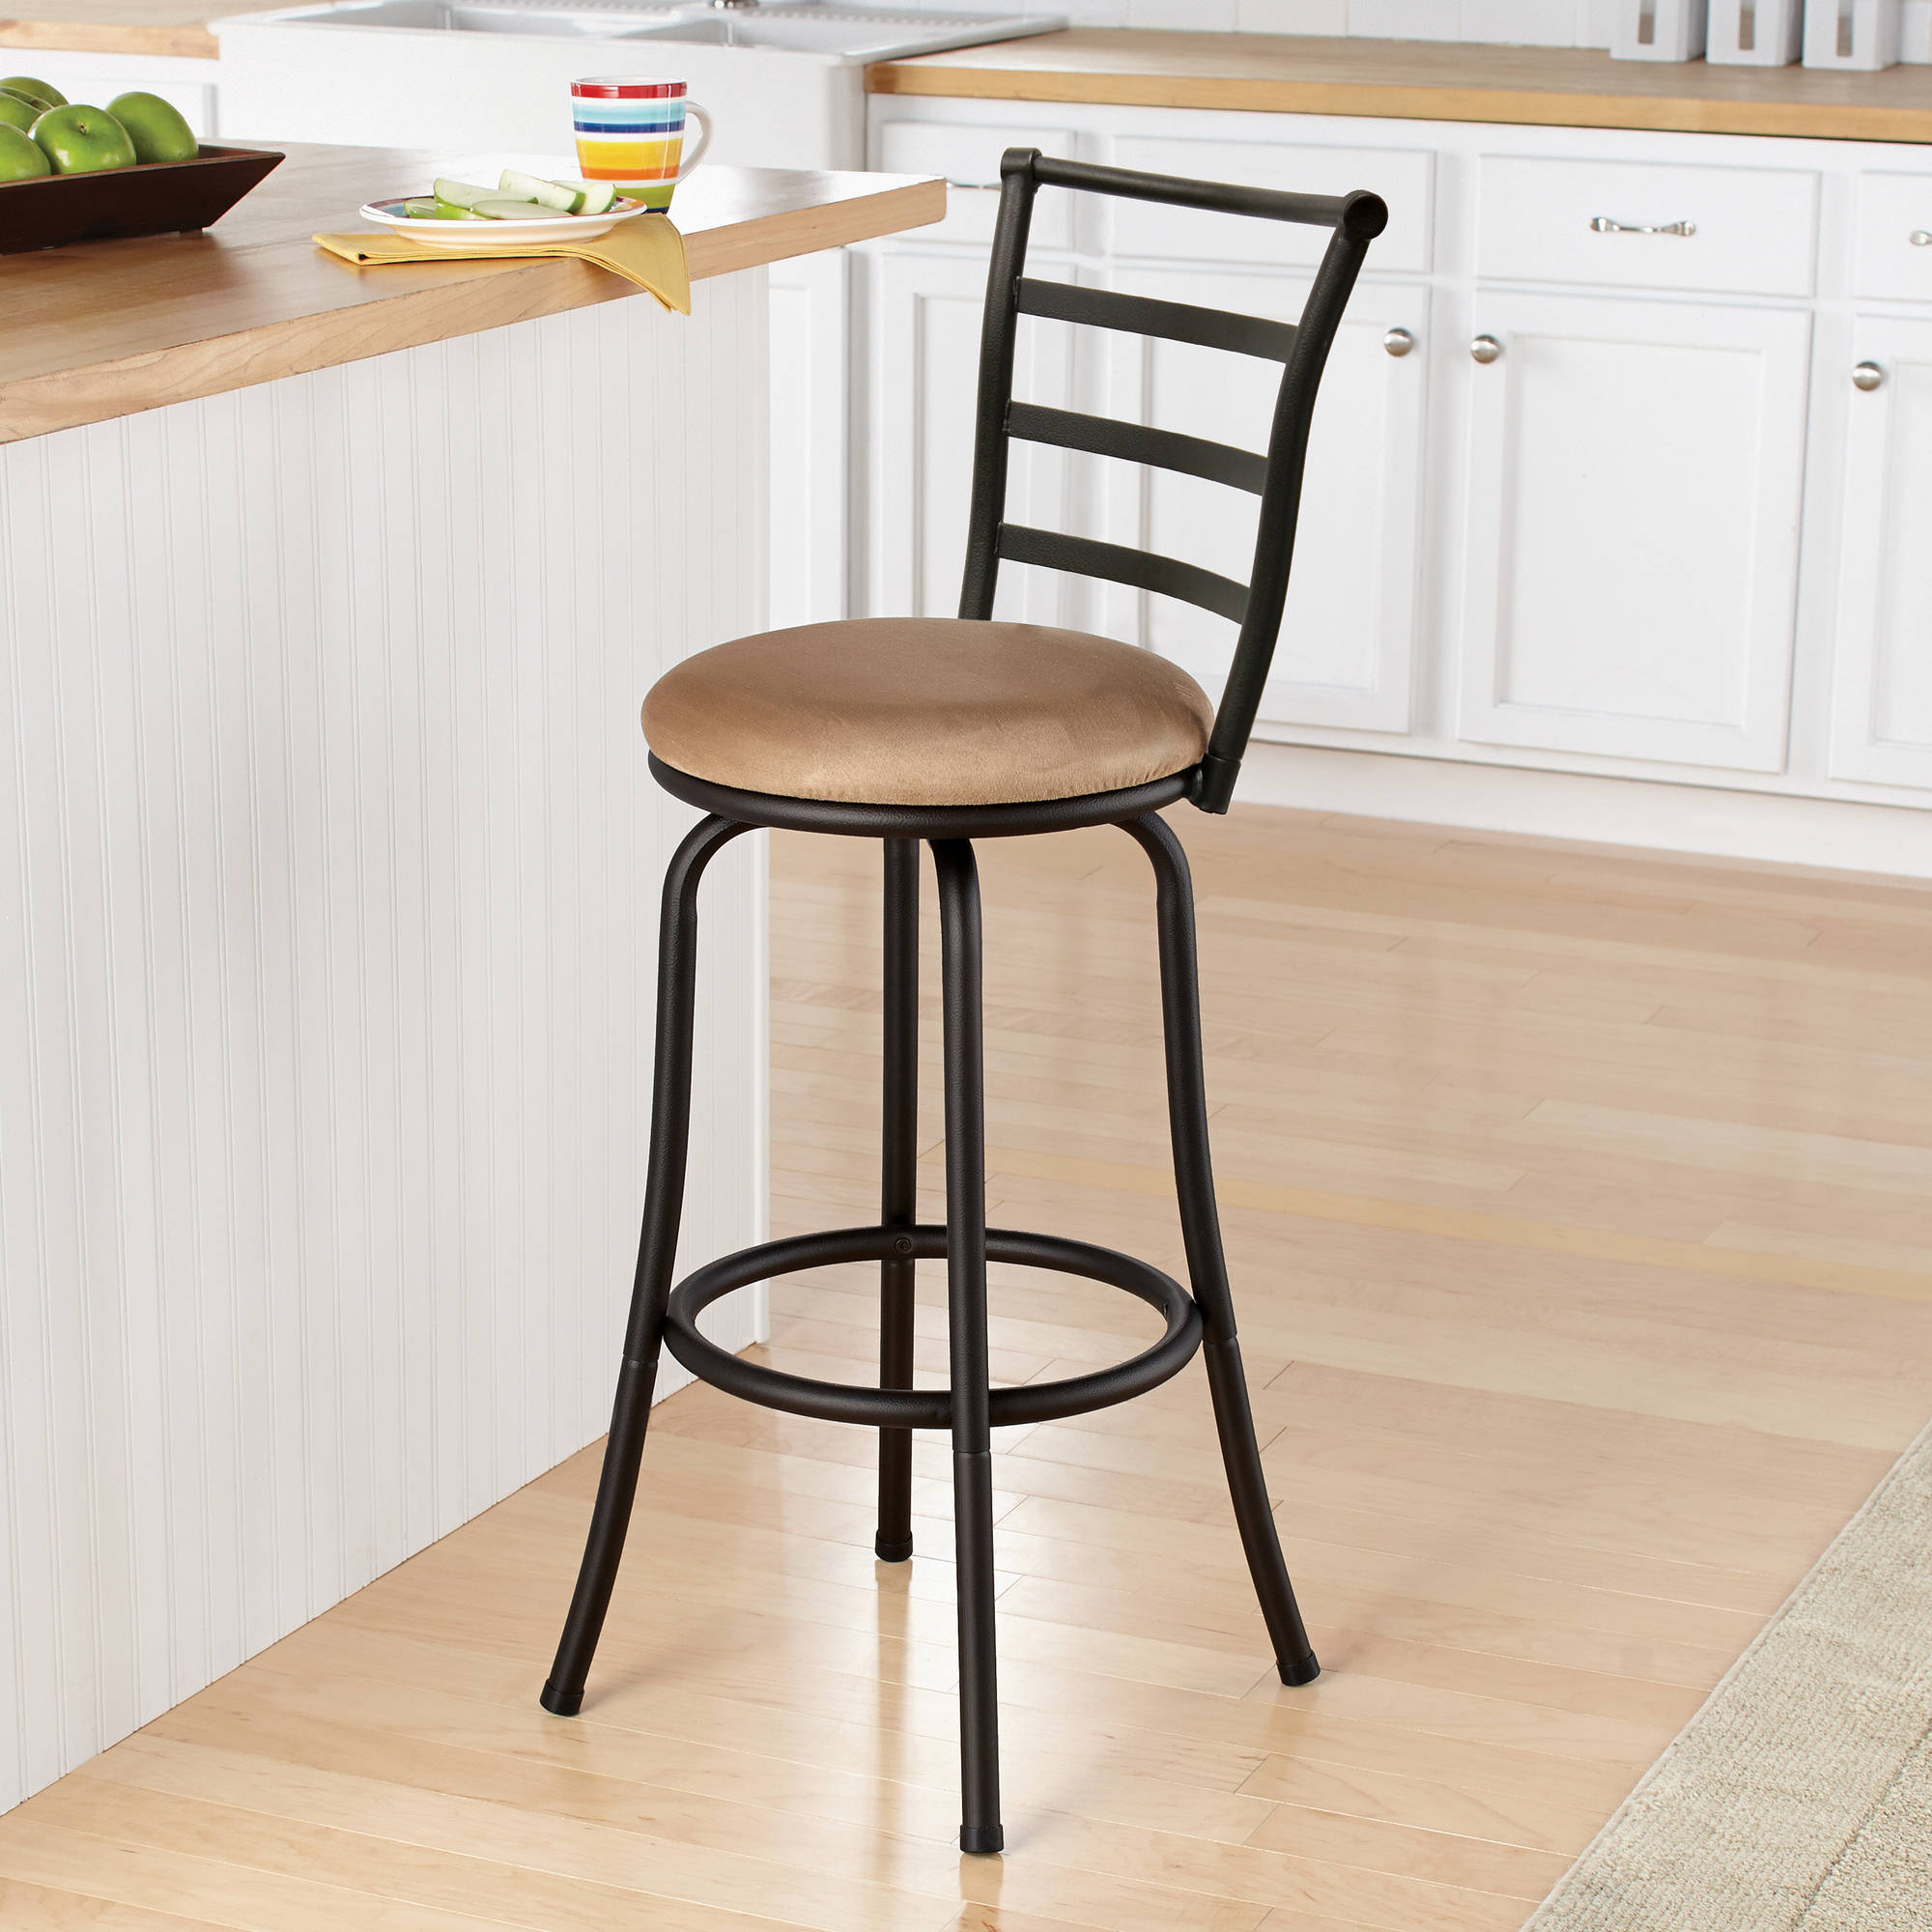 Mainstays Metal Swivel Bar Stool 29 Set Of 3 Black Walmartcom